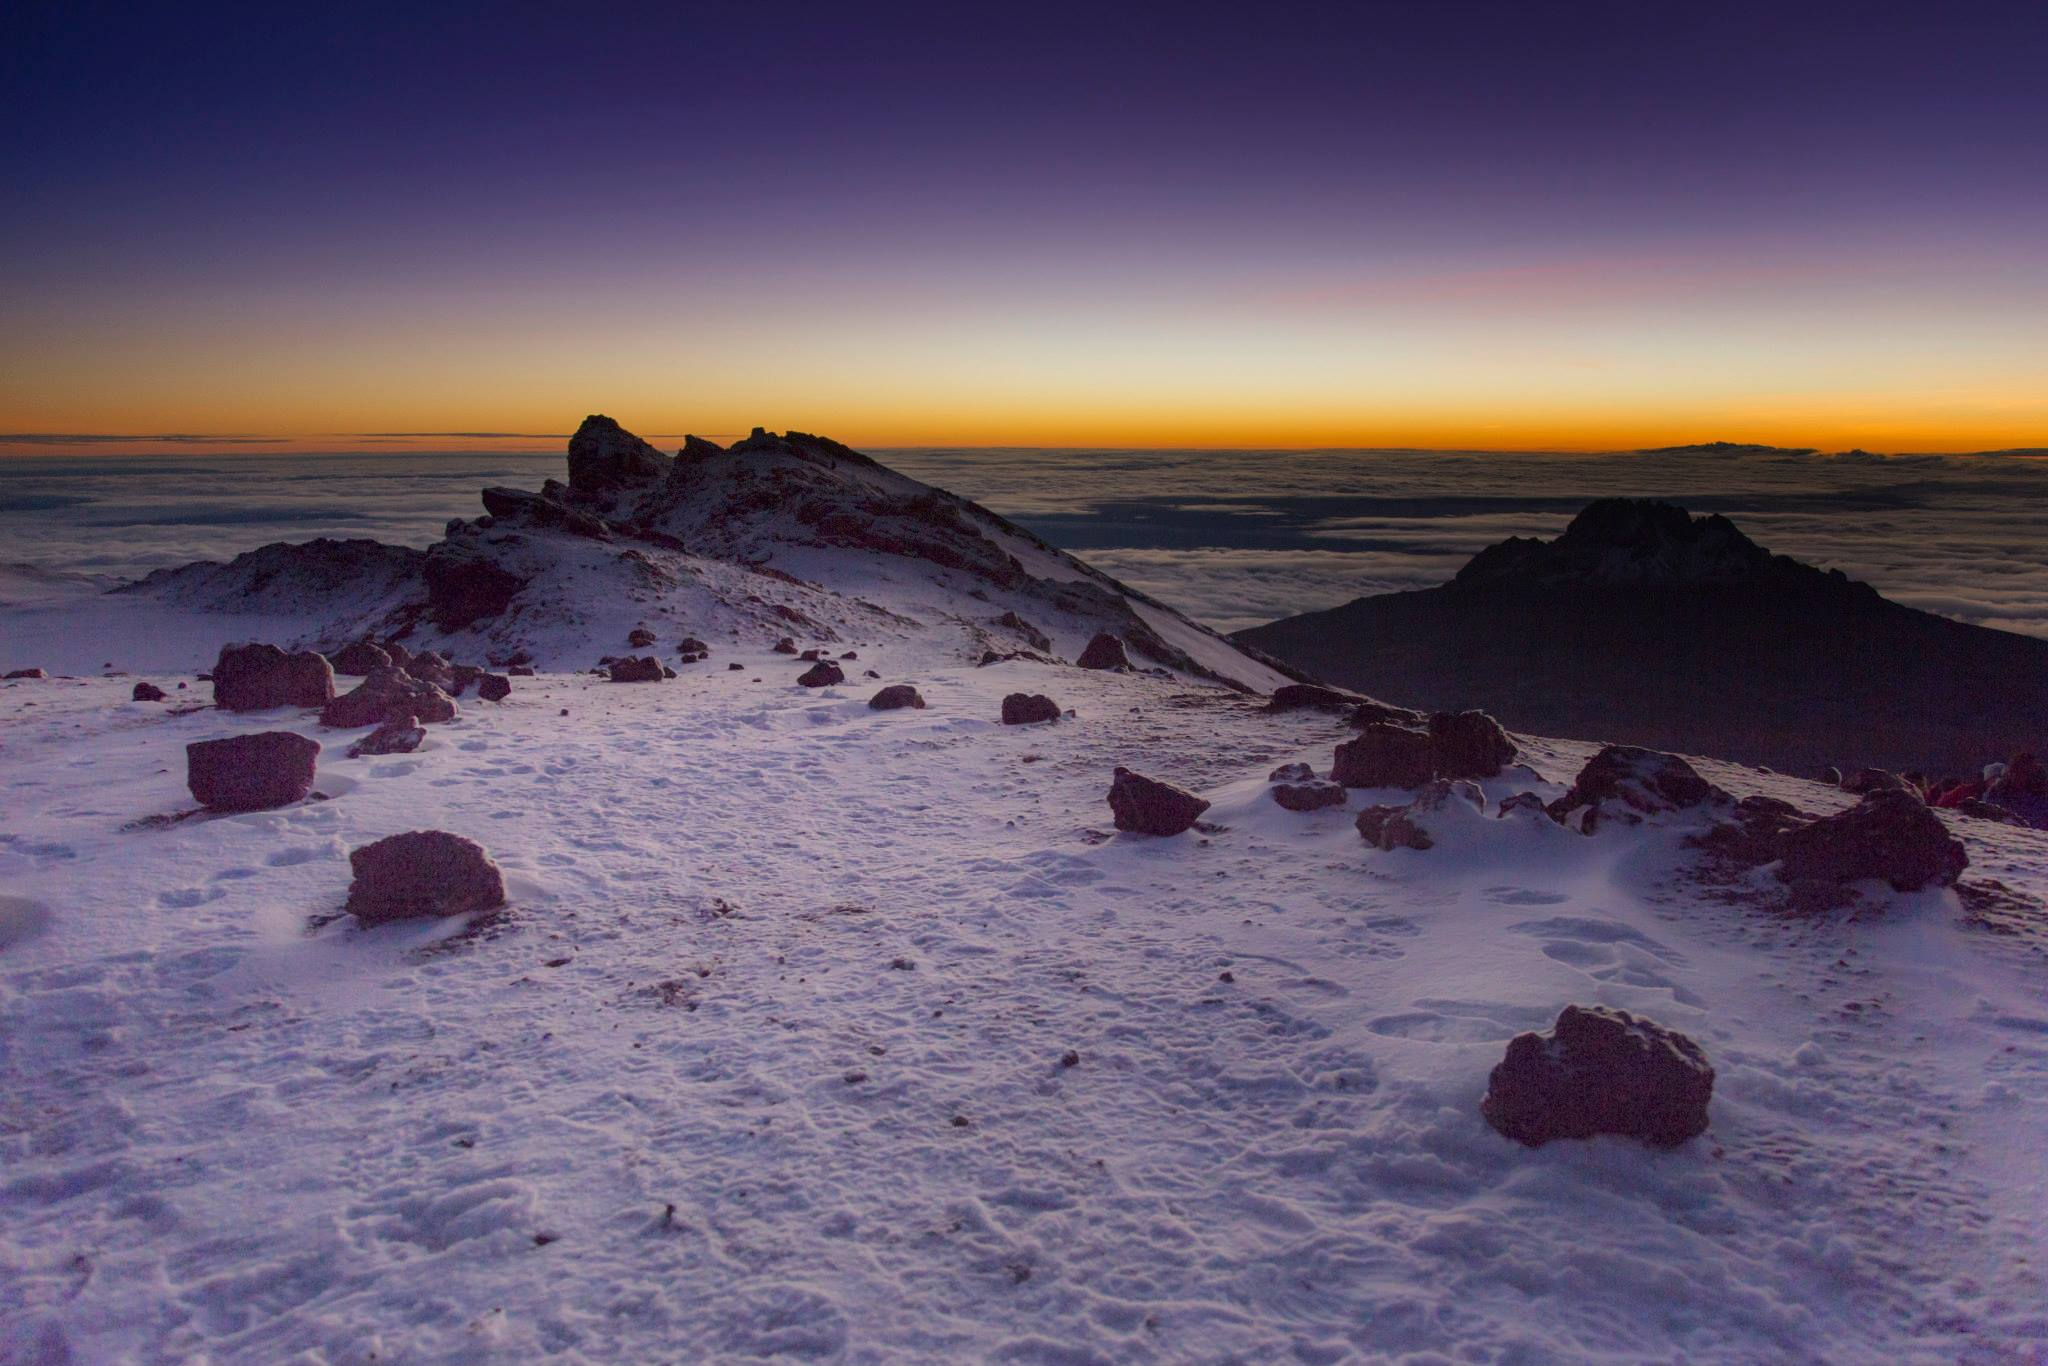 Sunrise over Mawenzi Peak